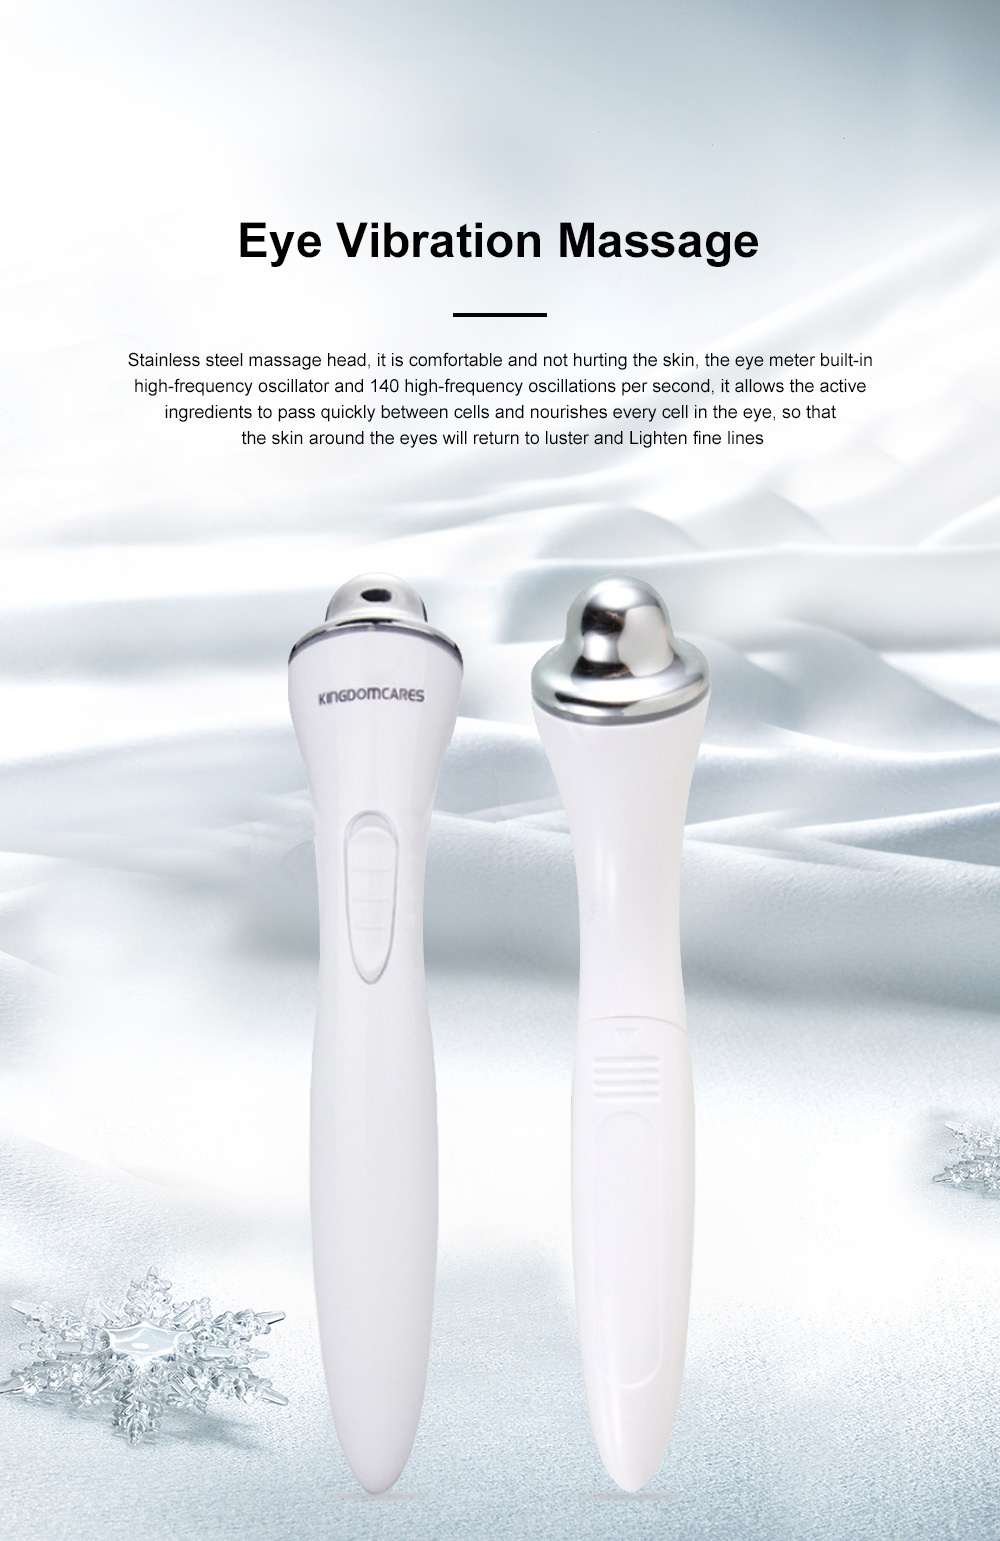 2019 Facial Eye Vibration Massage Lighten Dark Circles and Remove Under-eyes Bags Beauty Products for Women 0